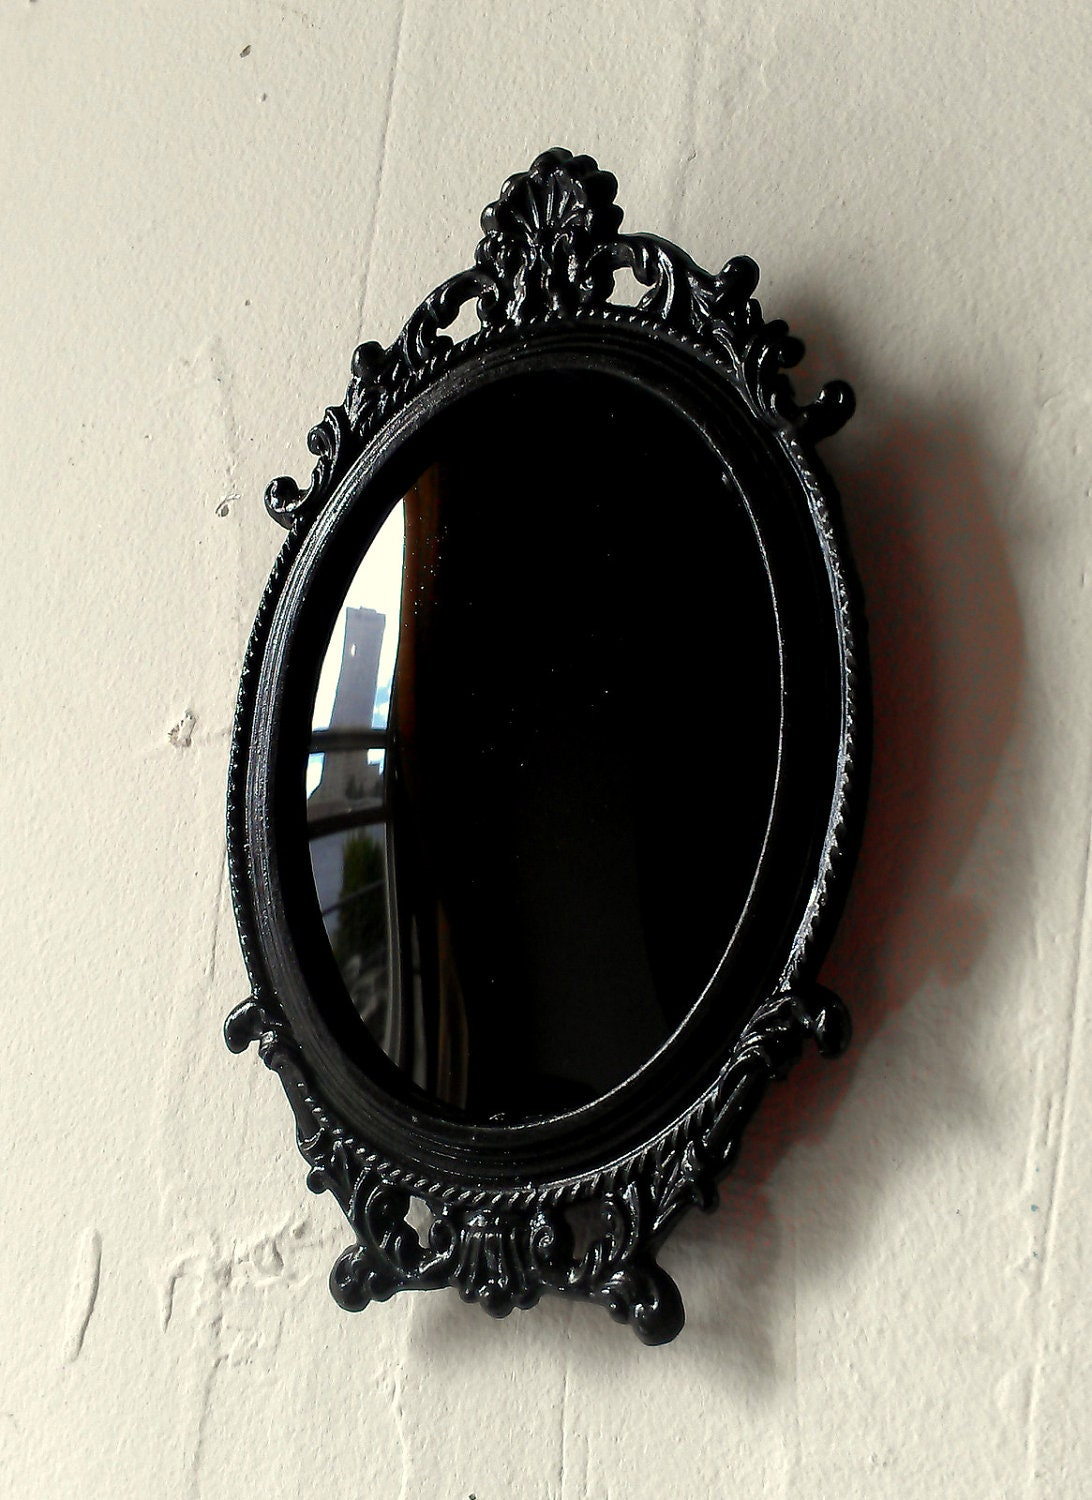 Black Scrying Mirror in Miniature Vintage Oval Frame with